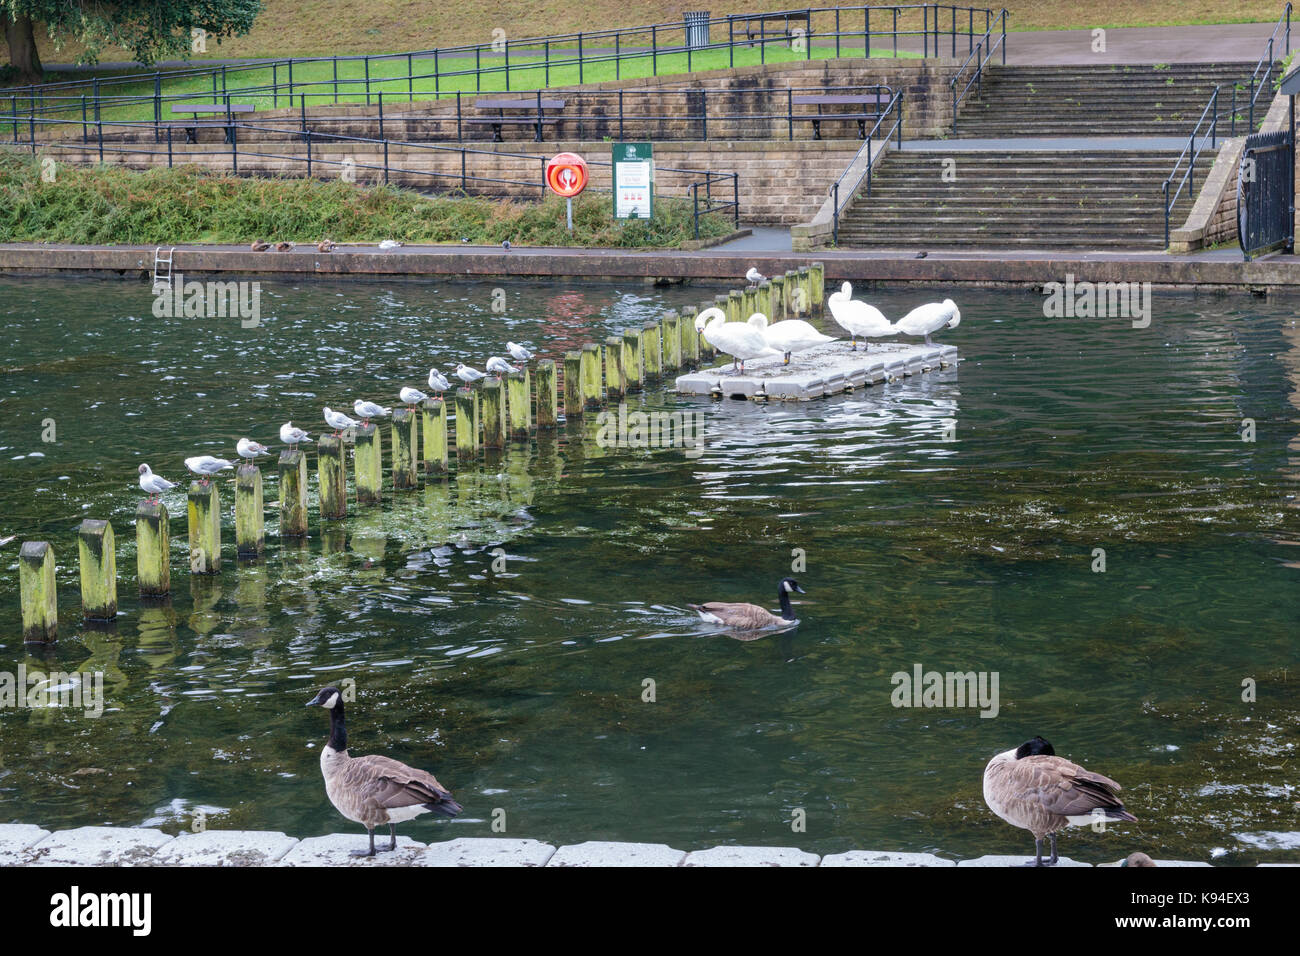 Swans and ducks on Waterloo Lake, Roundhay Park, Leeds Stock Photo